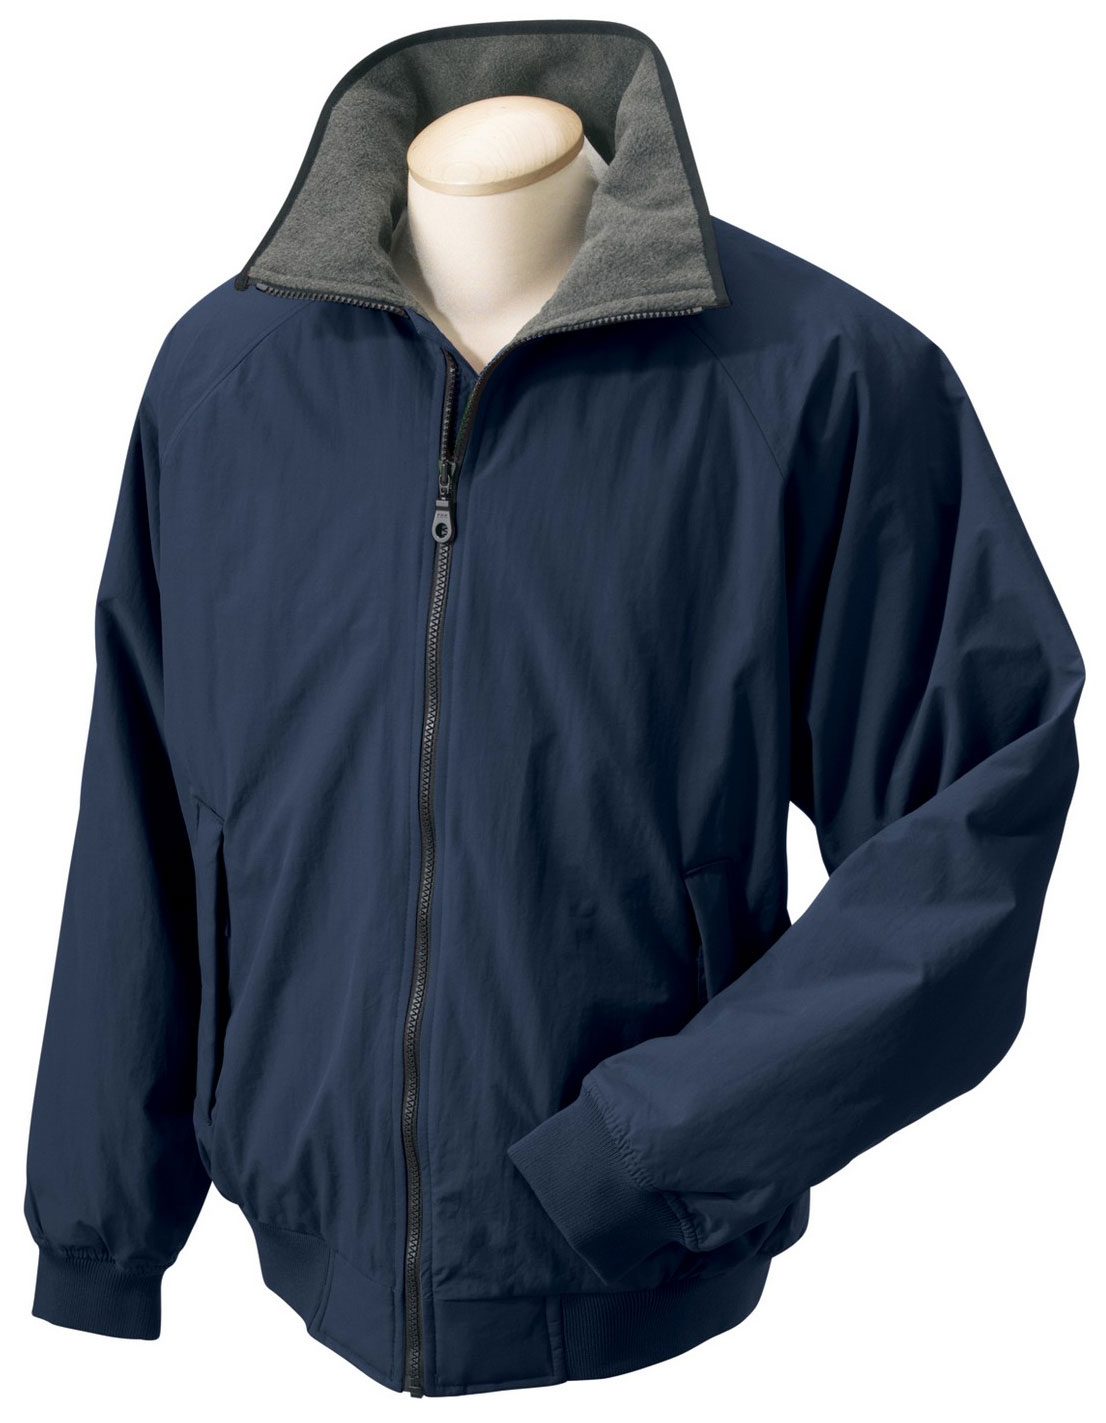 Devon & Jones Mens Three-Season Classic Jacket